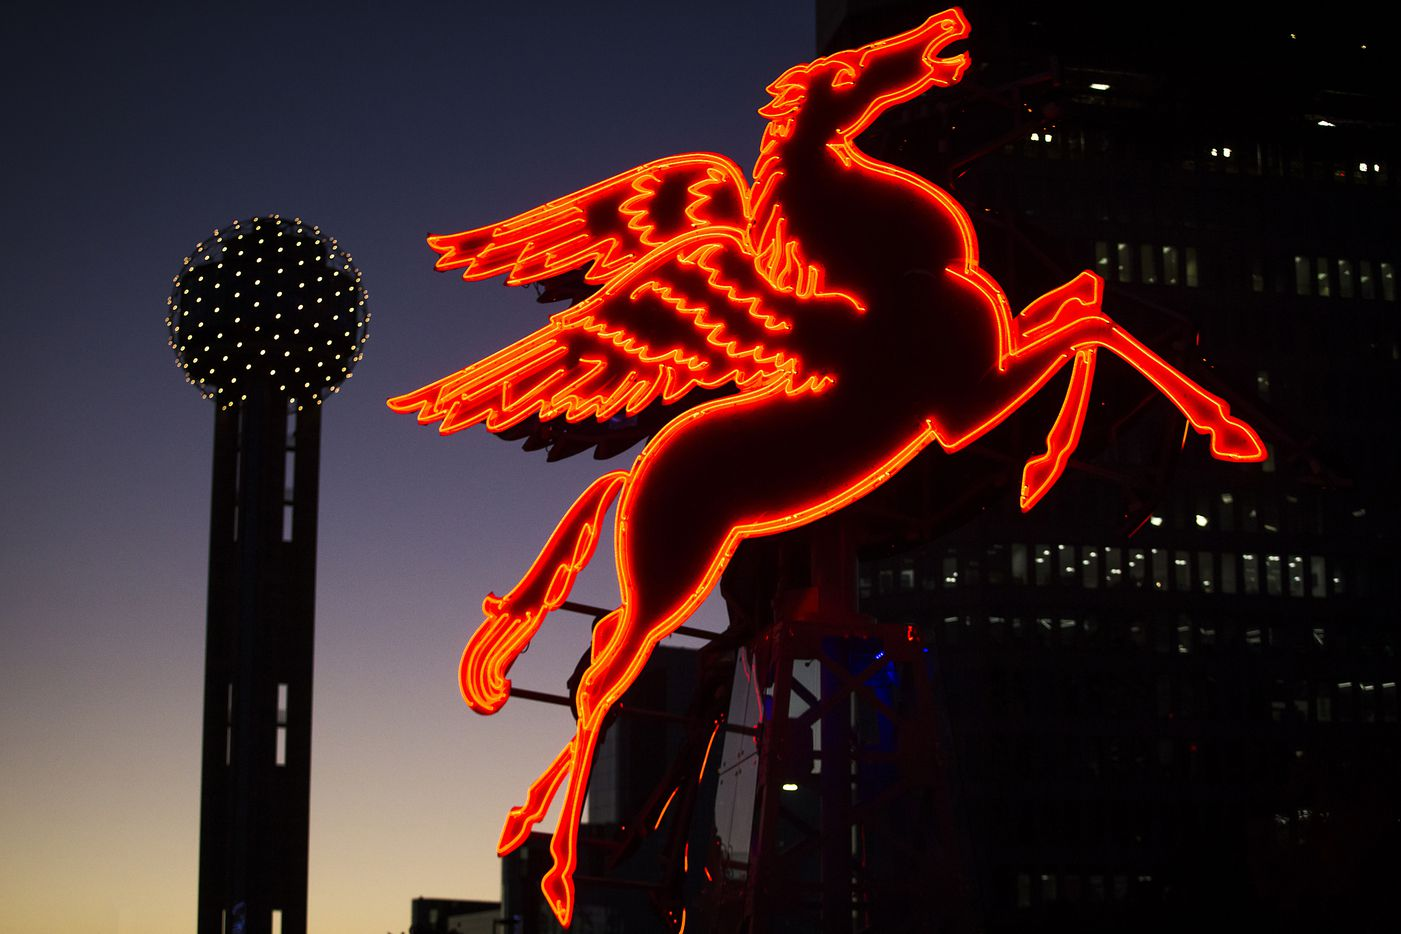 The restored original Pegasus now sits in front of the Omni Dallas Hotel, rotating on a small derrick-like structure.